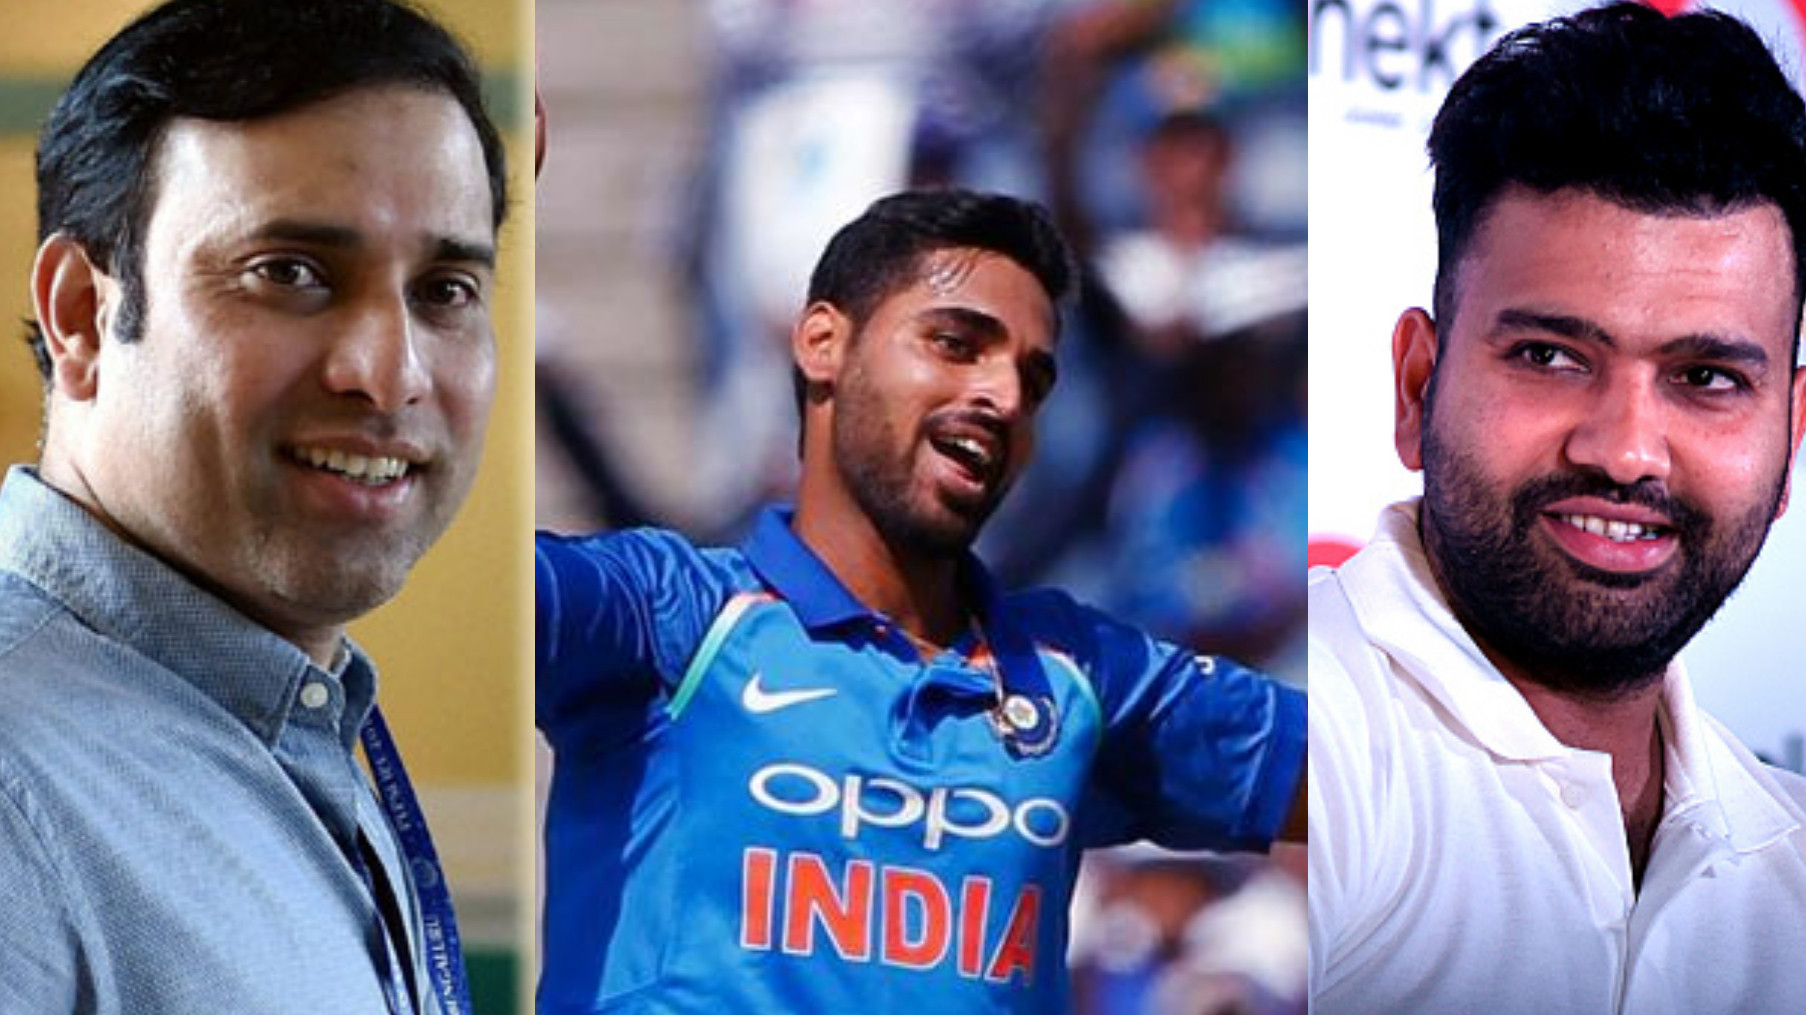 Bhuvneshwar Kumar gets birthday wishes from Indian Cricket Fraternity as he turns 29